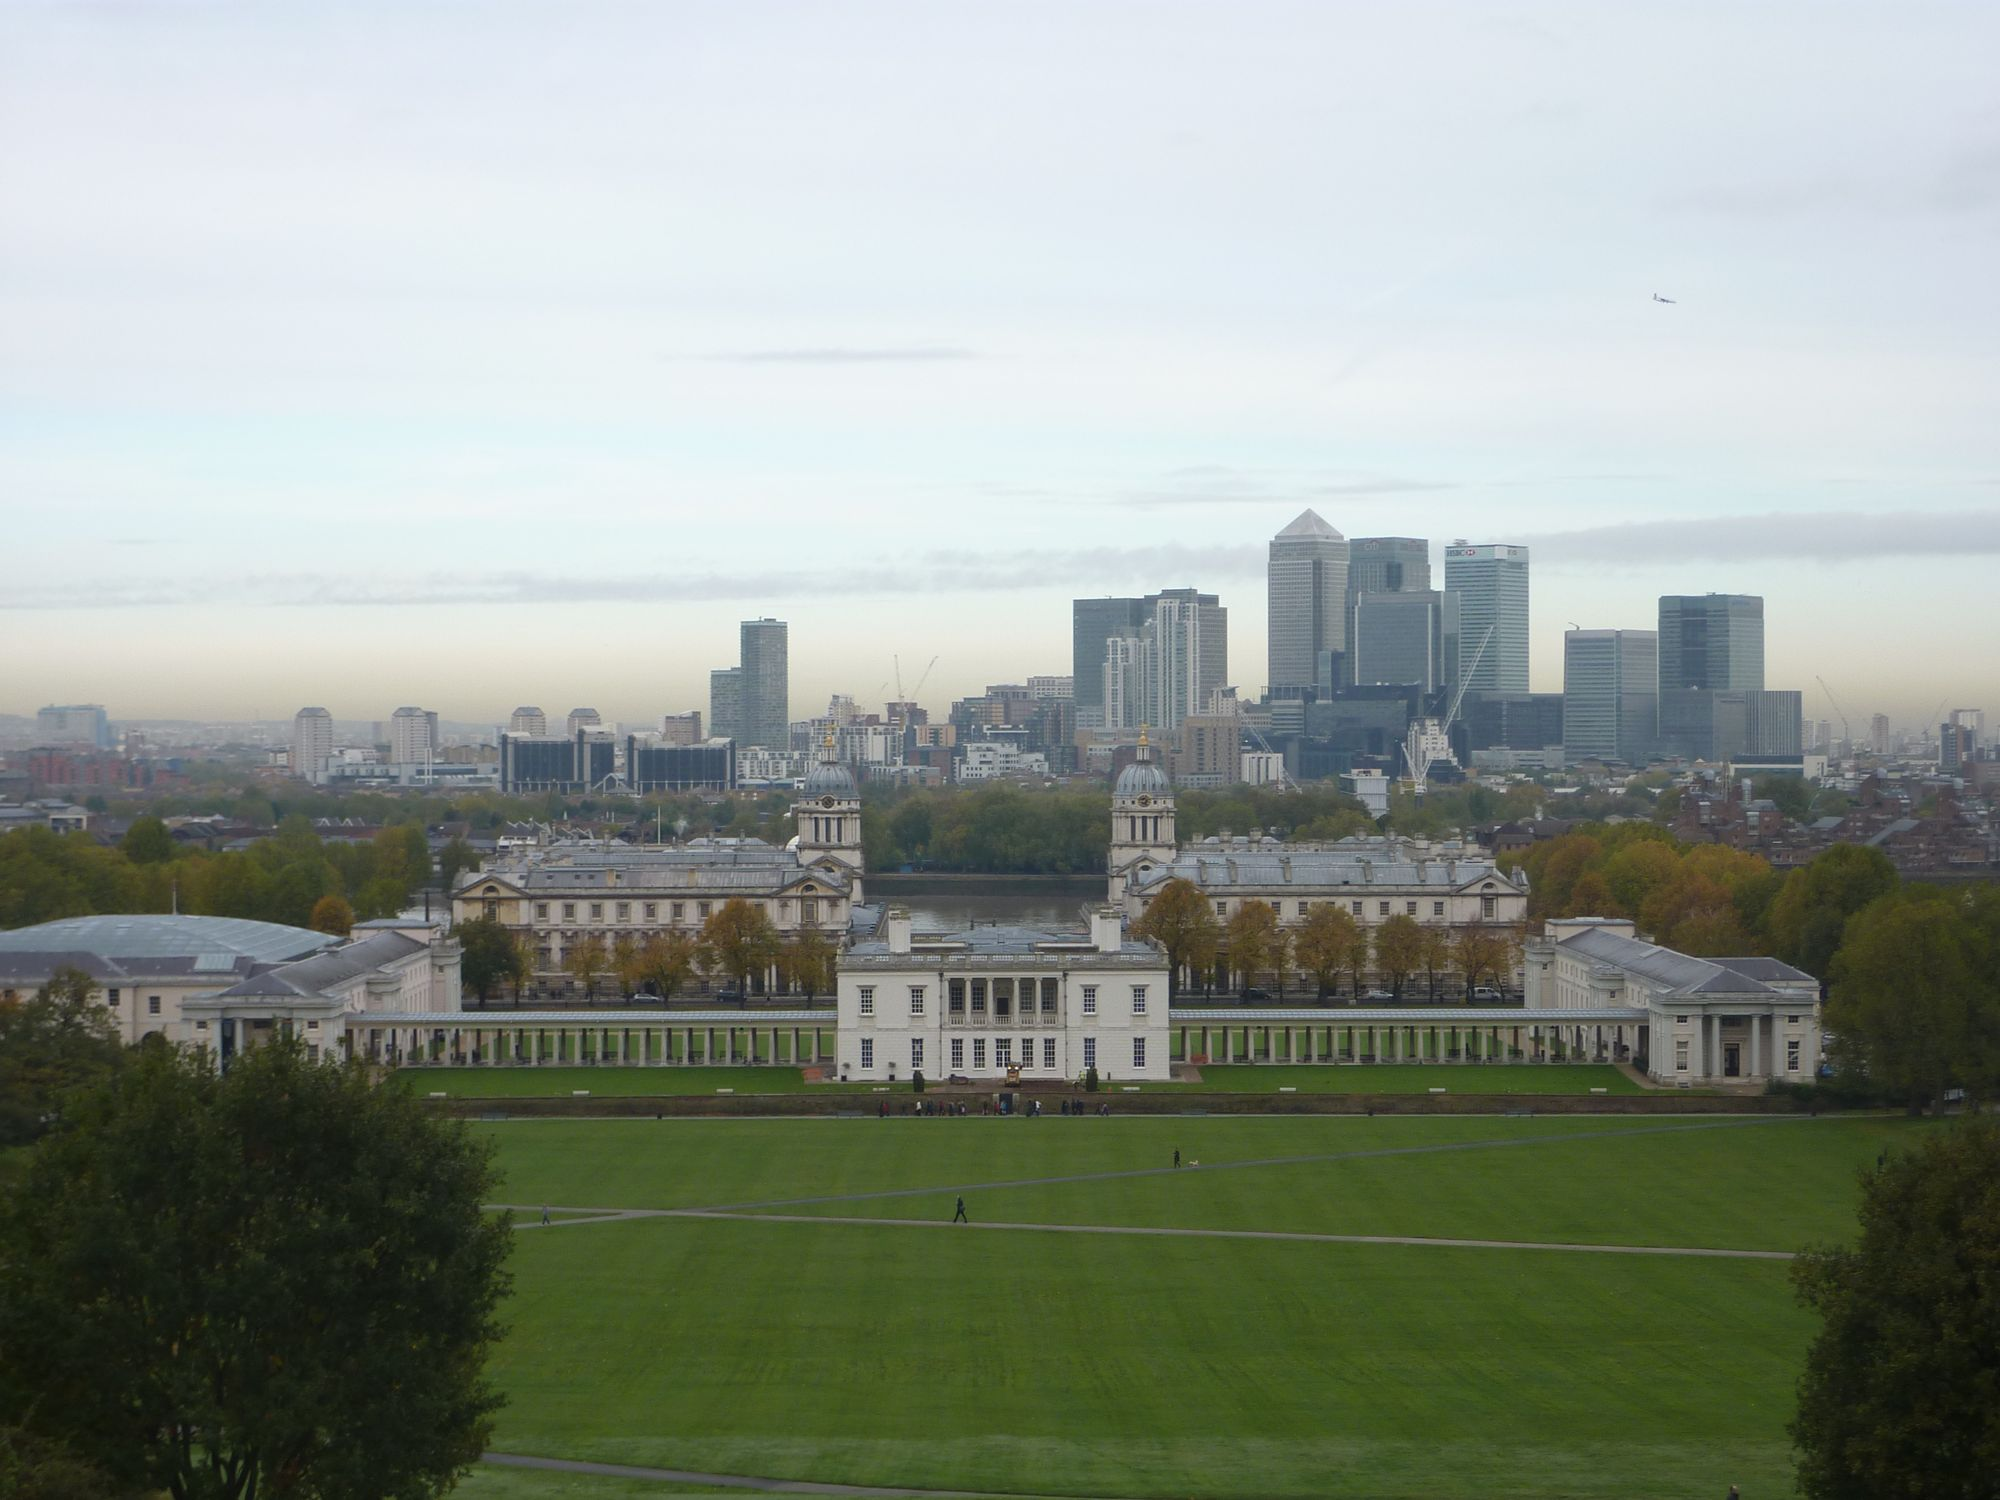 Greenwich is special